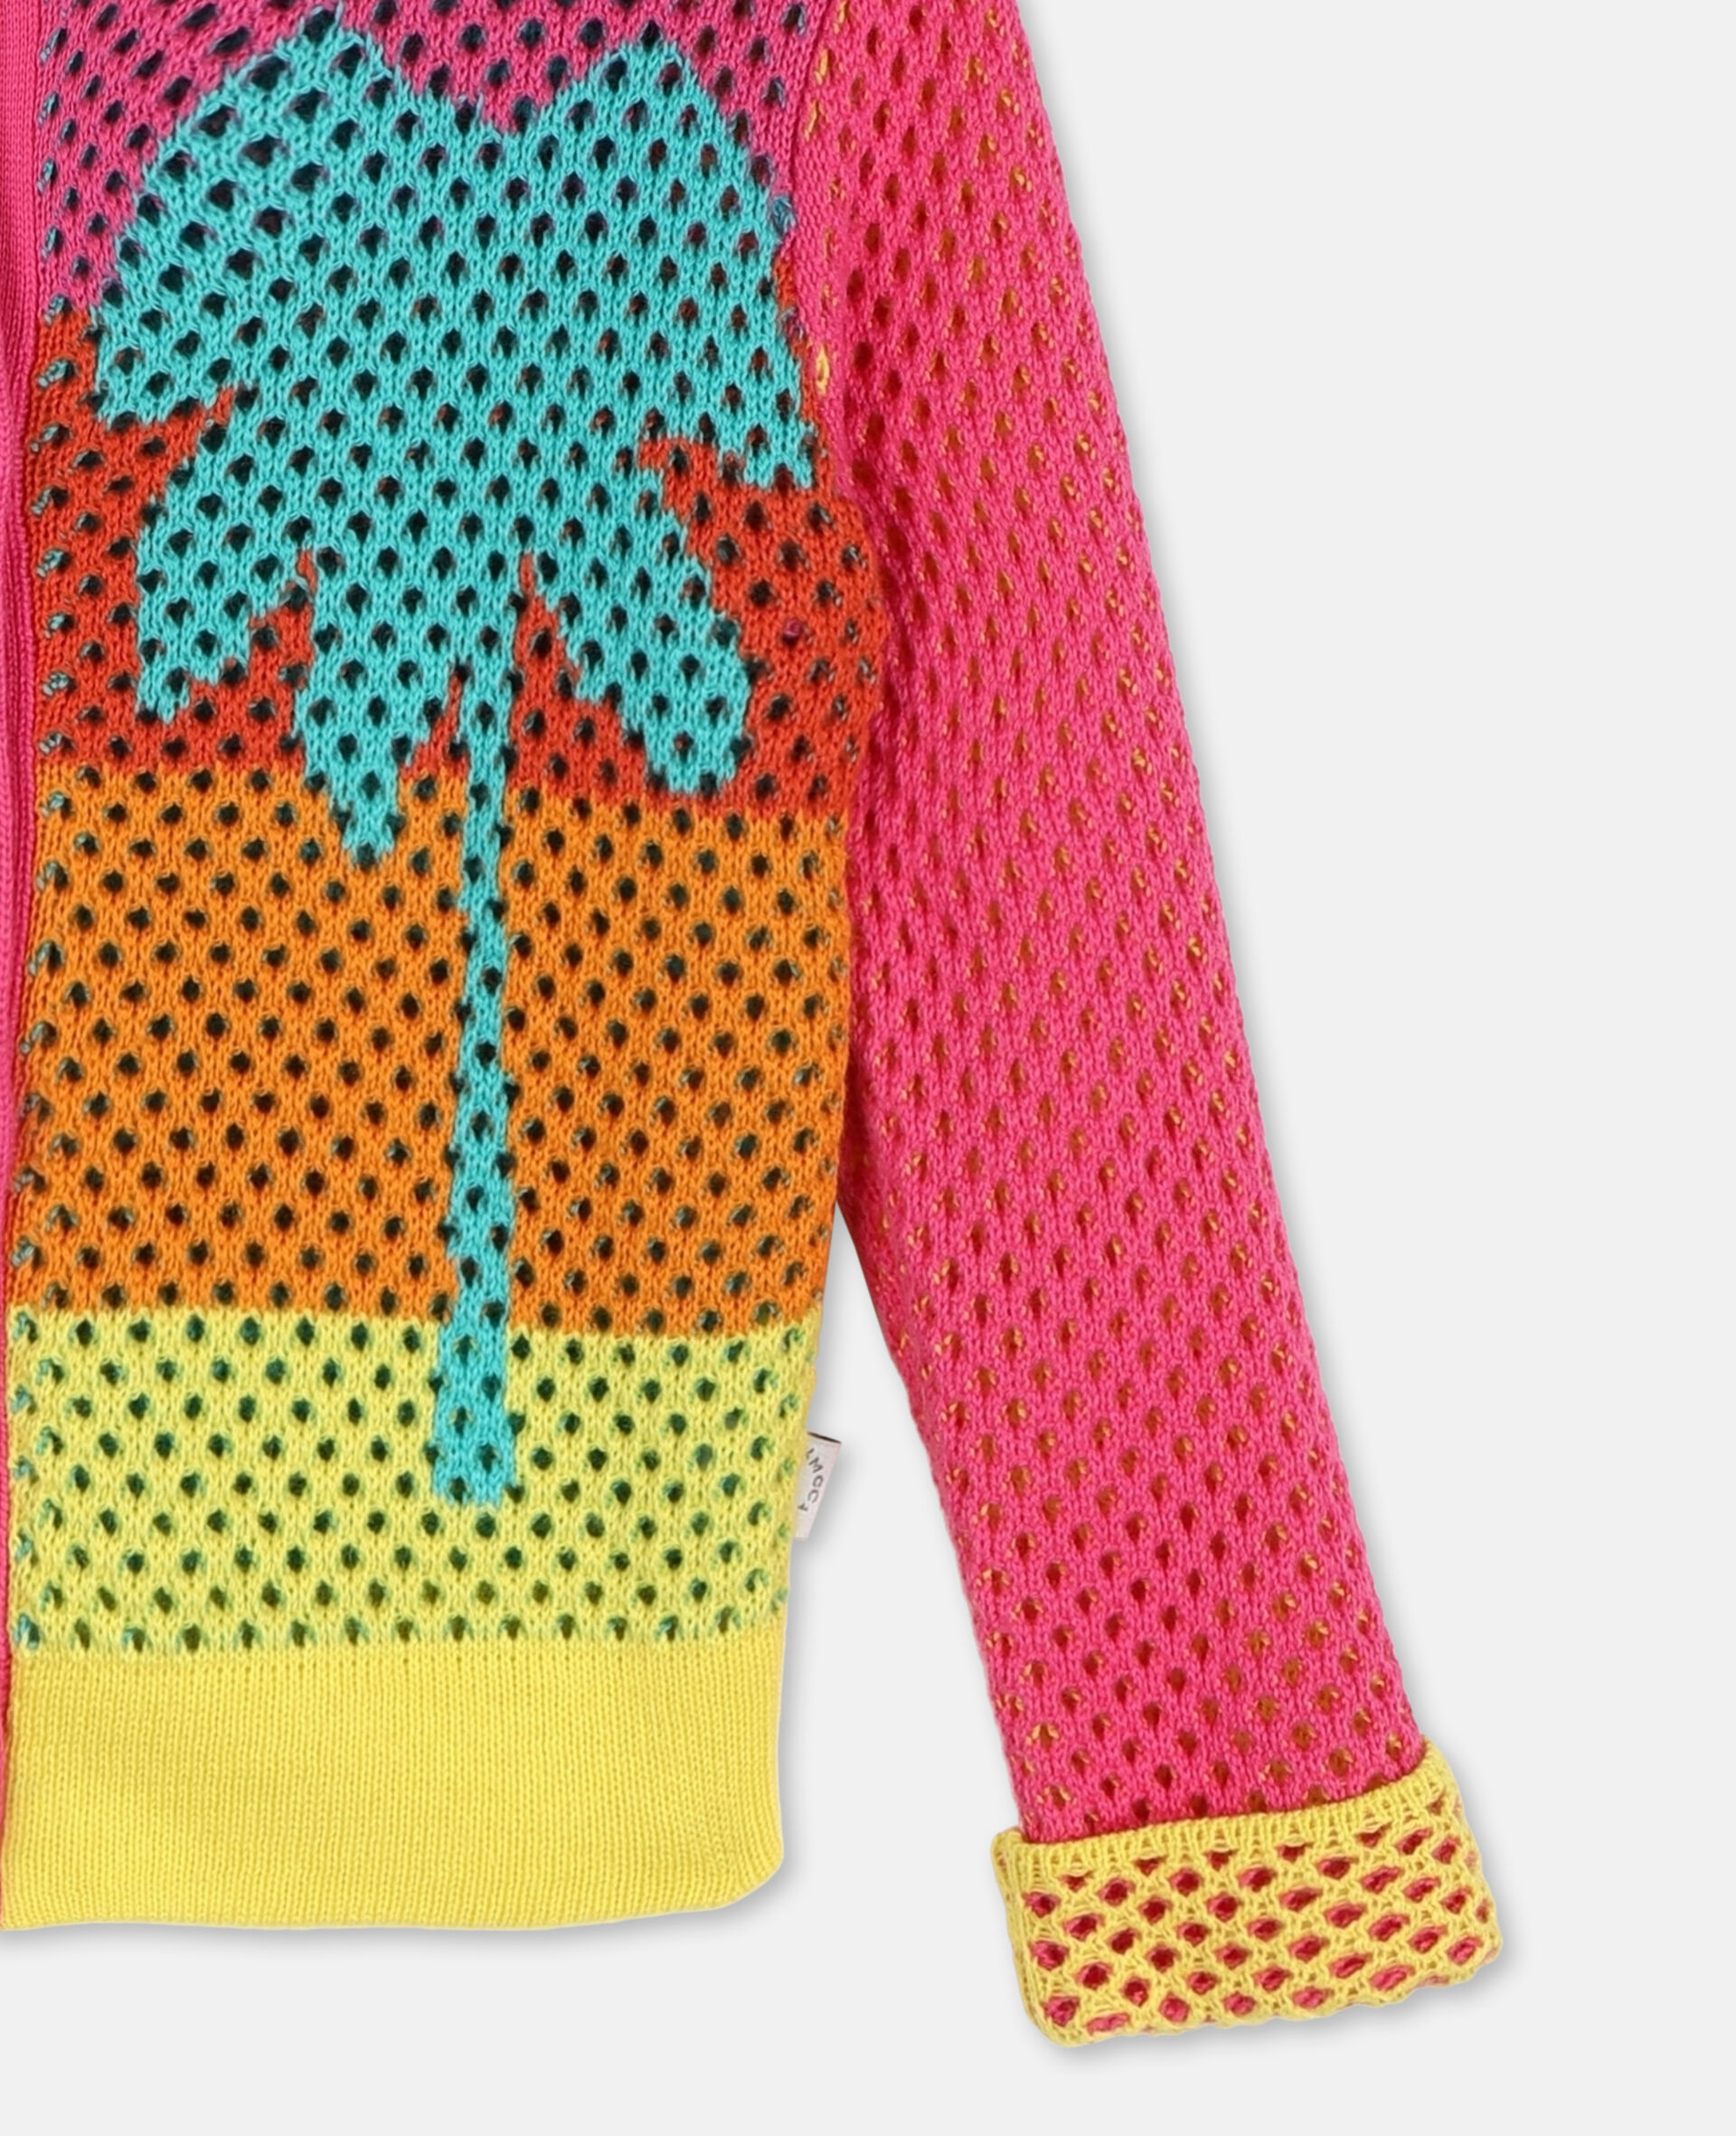 Intarsia Mesh Knit Cotton Cardigan-Multicolour-large image number 2